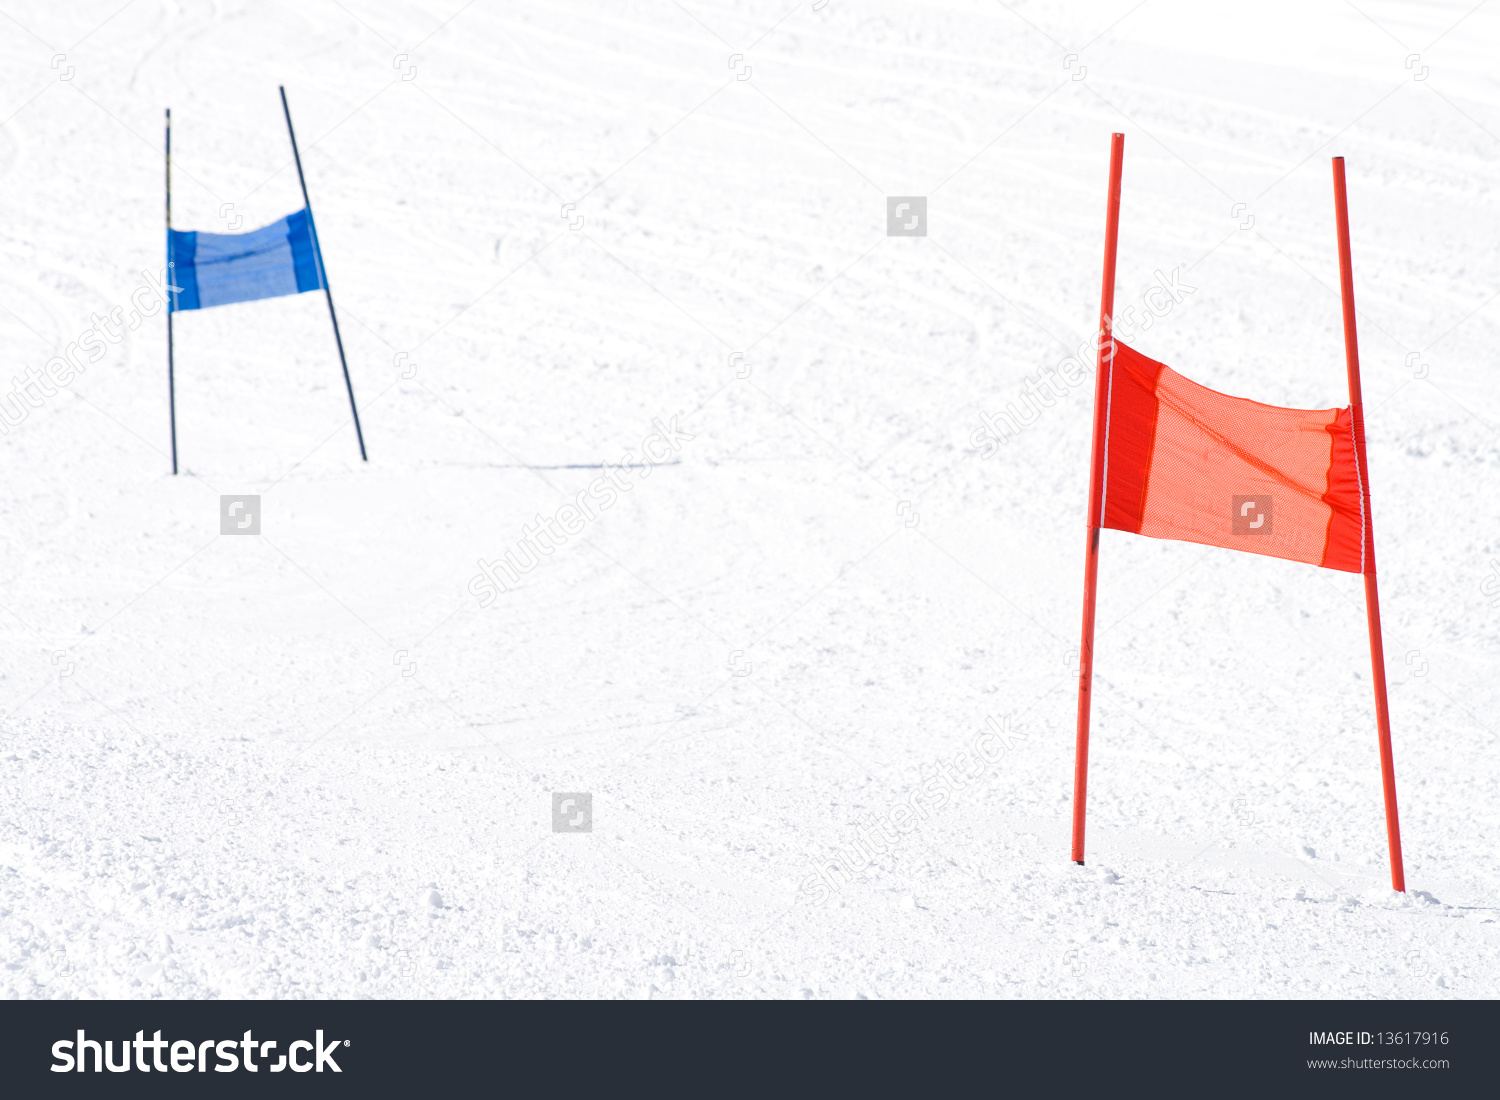 Red Blue Ski Gates Slalom Course Stock Photo 13617916.